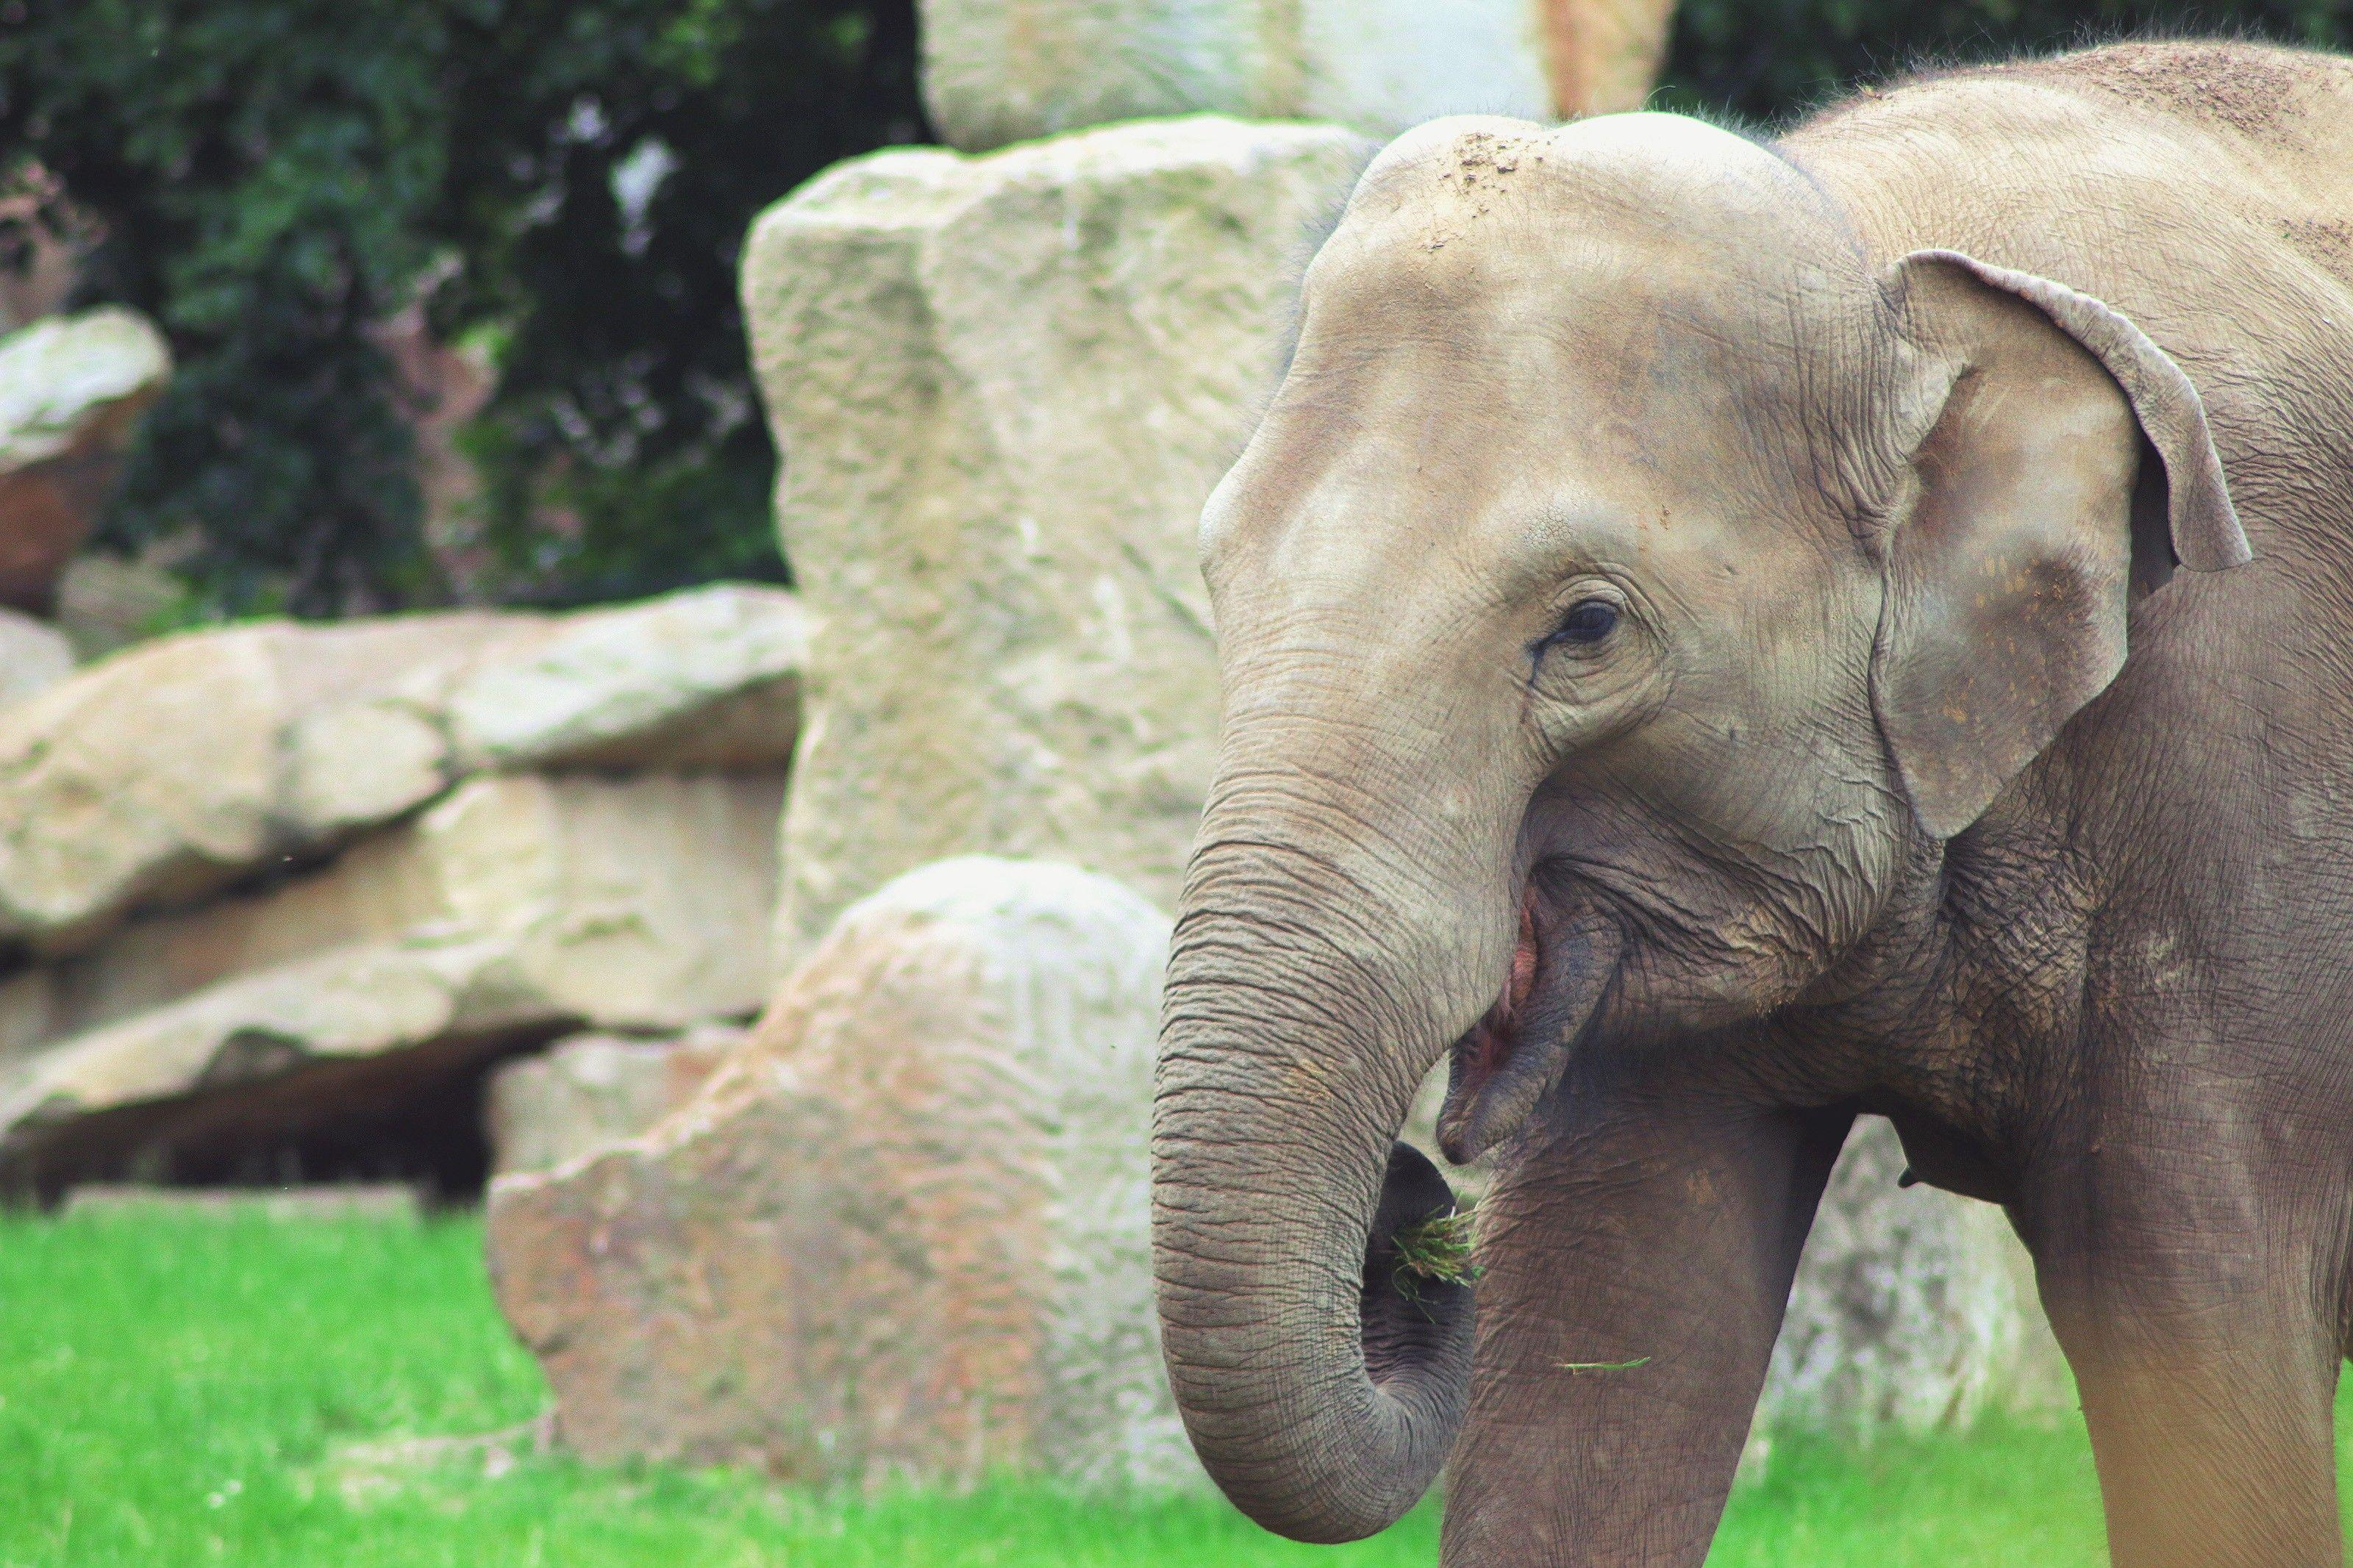 south africa elephant free download hd wallpapers   HD Wallpapers ...